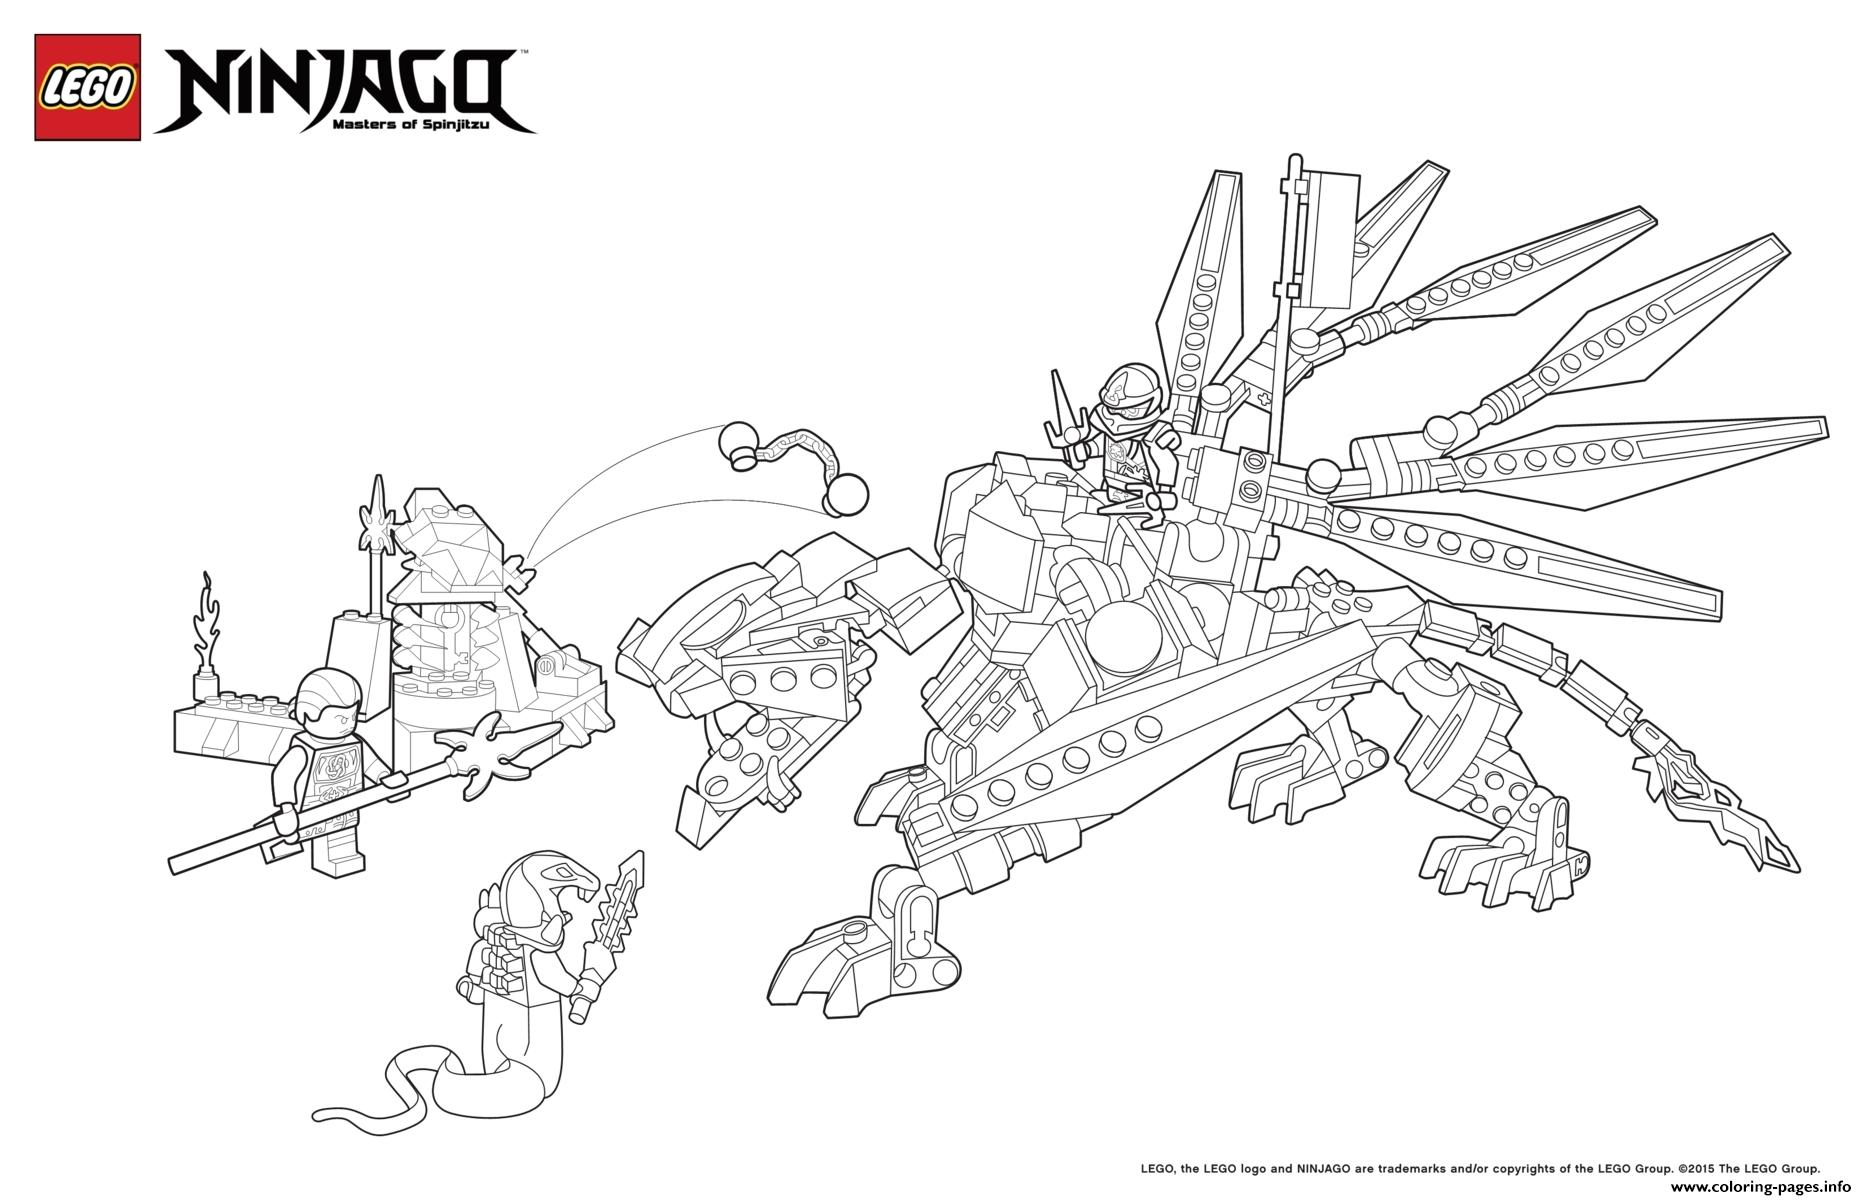 Uncategorized Ninjago Coloring Pages Free Printable ninjago coloring pages free printable dragon ninja attack enemy lego pages